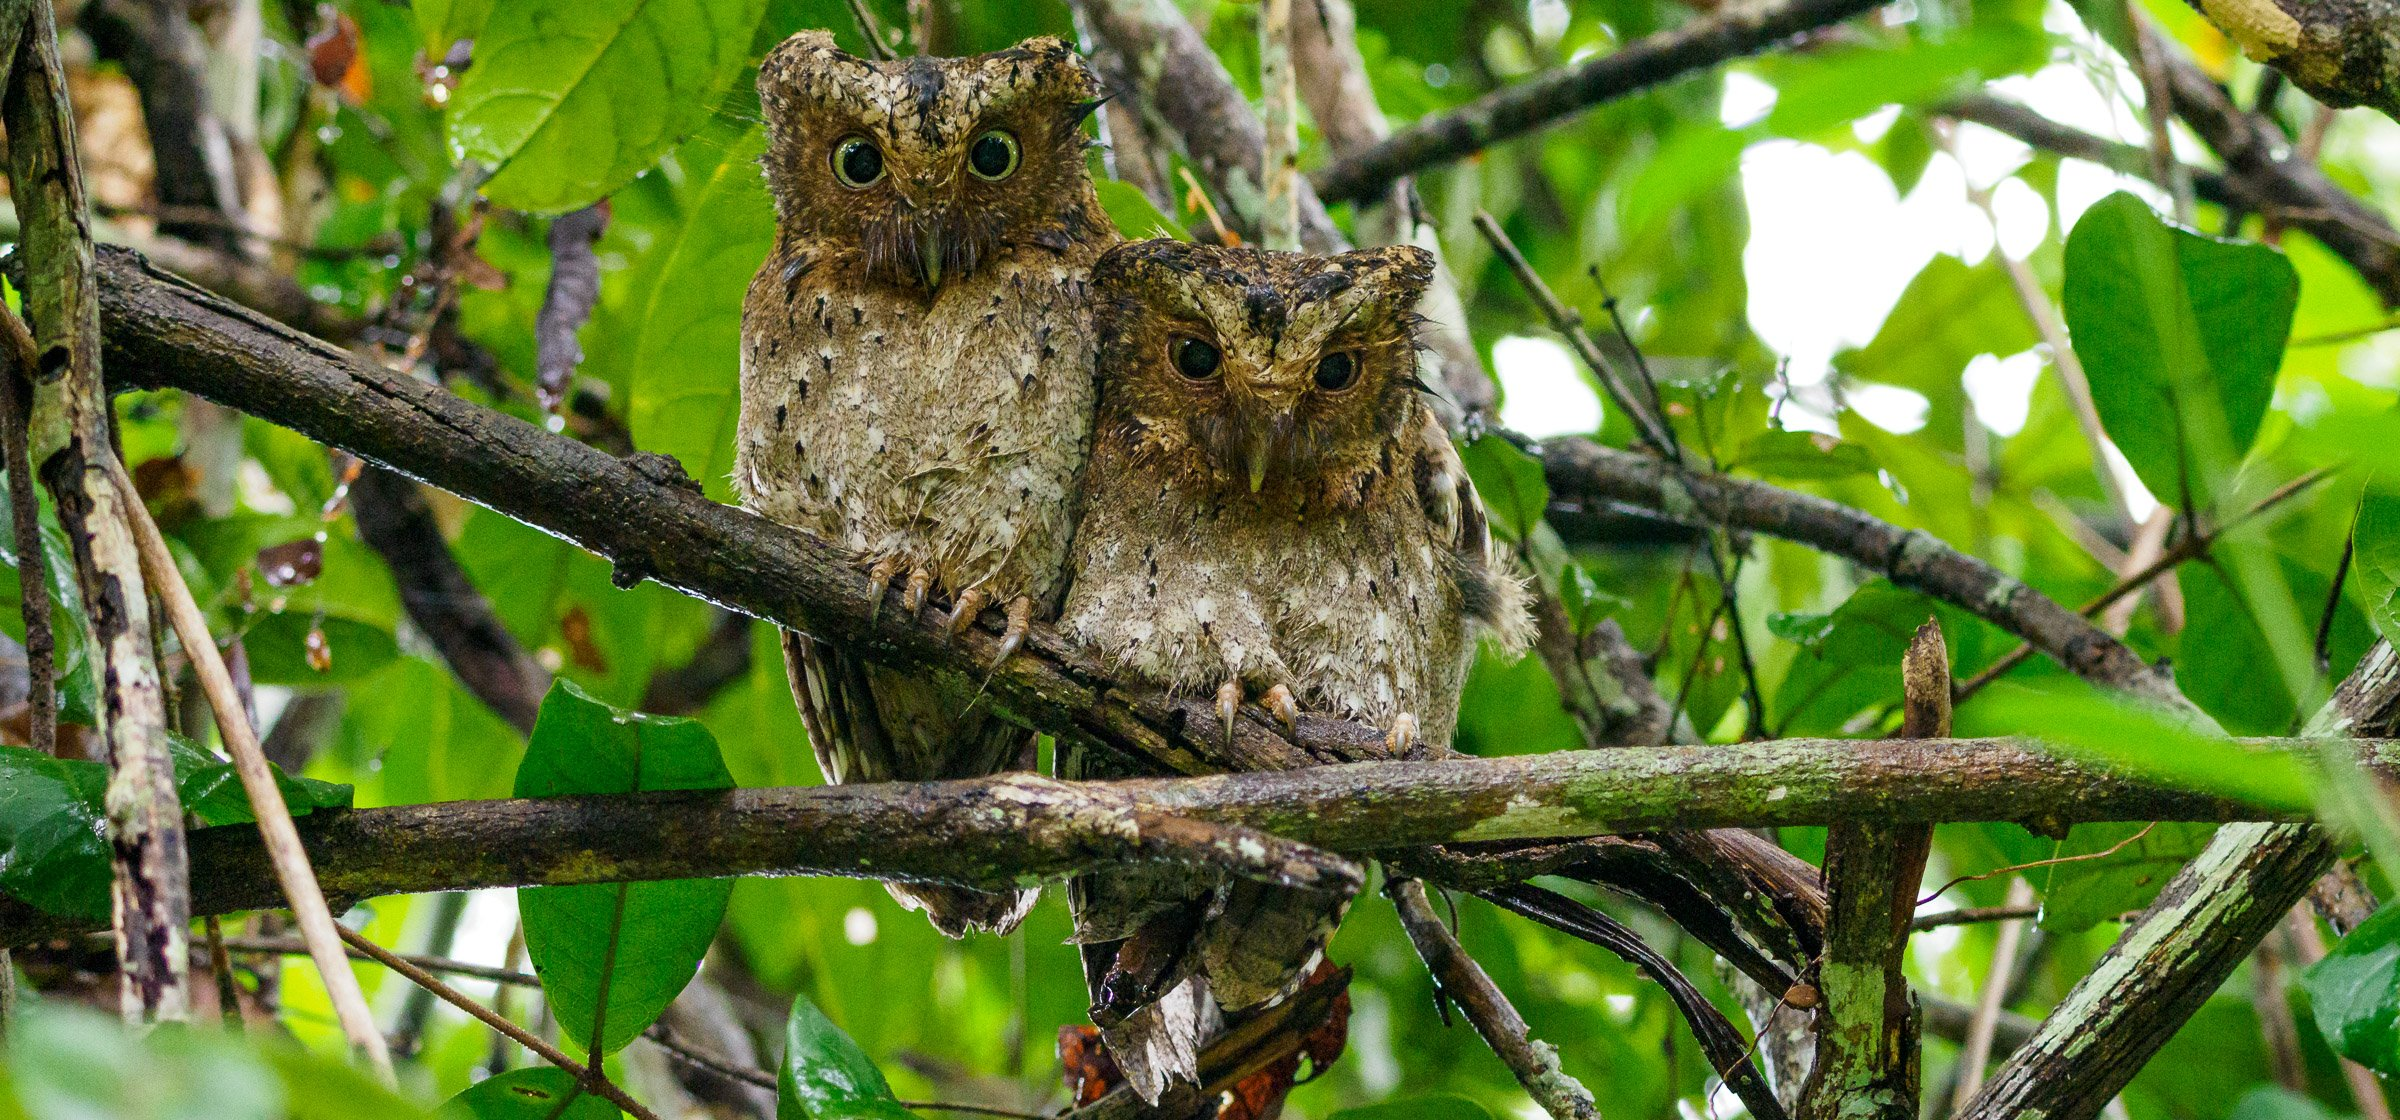 A mating pair of sokoke scops owl on a branch surrounded by trees